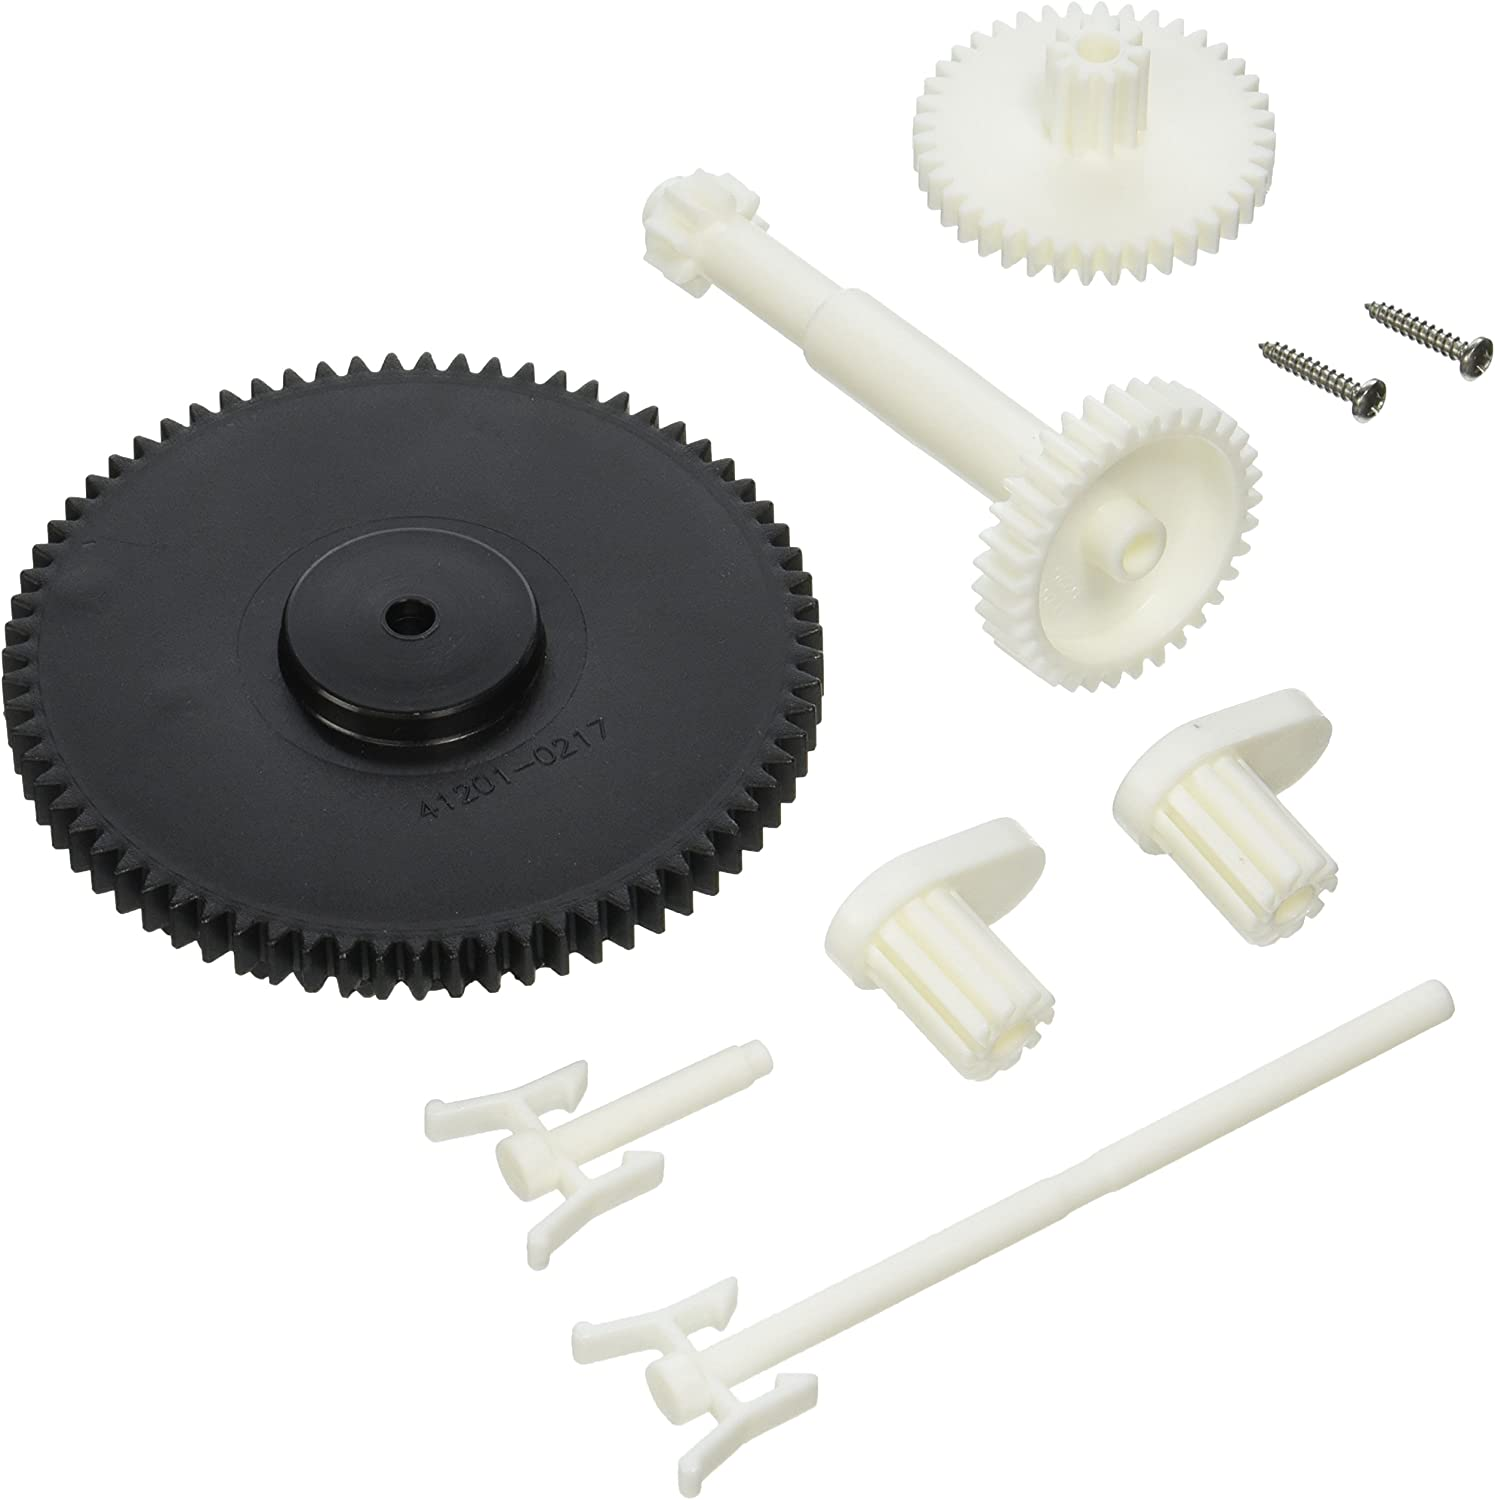 Pentair GW7504 Gear Replacement Kit Pool and Spa Automatic Cleaner